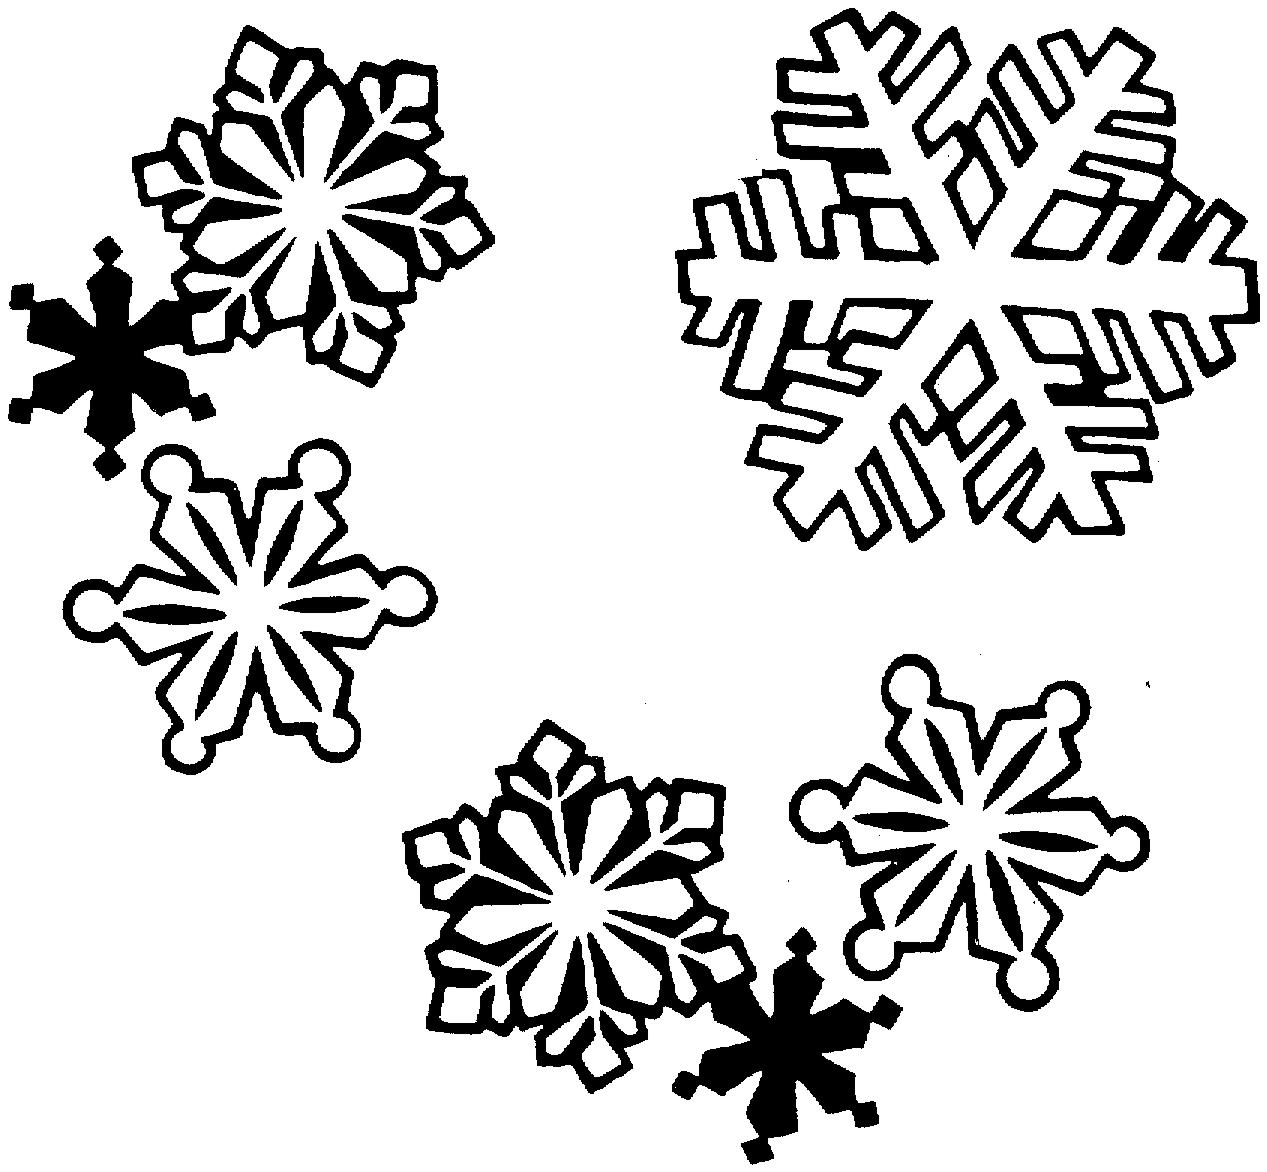 ornament clipart black and white-ornament clipart black and white-18